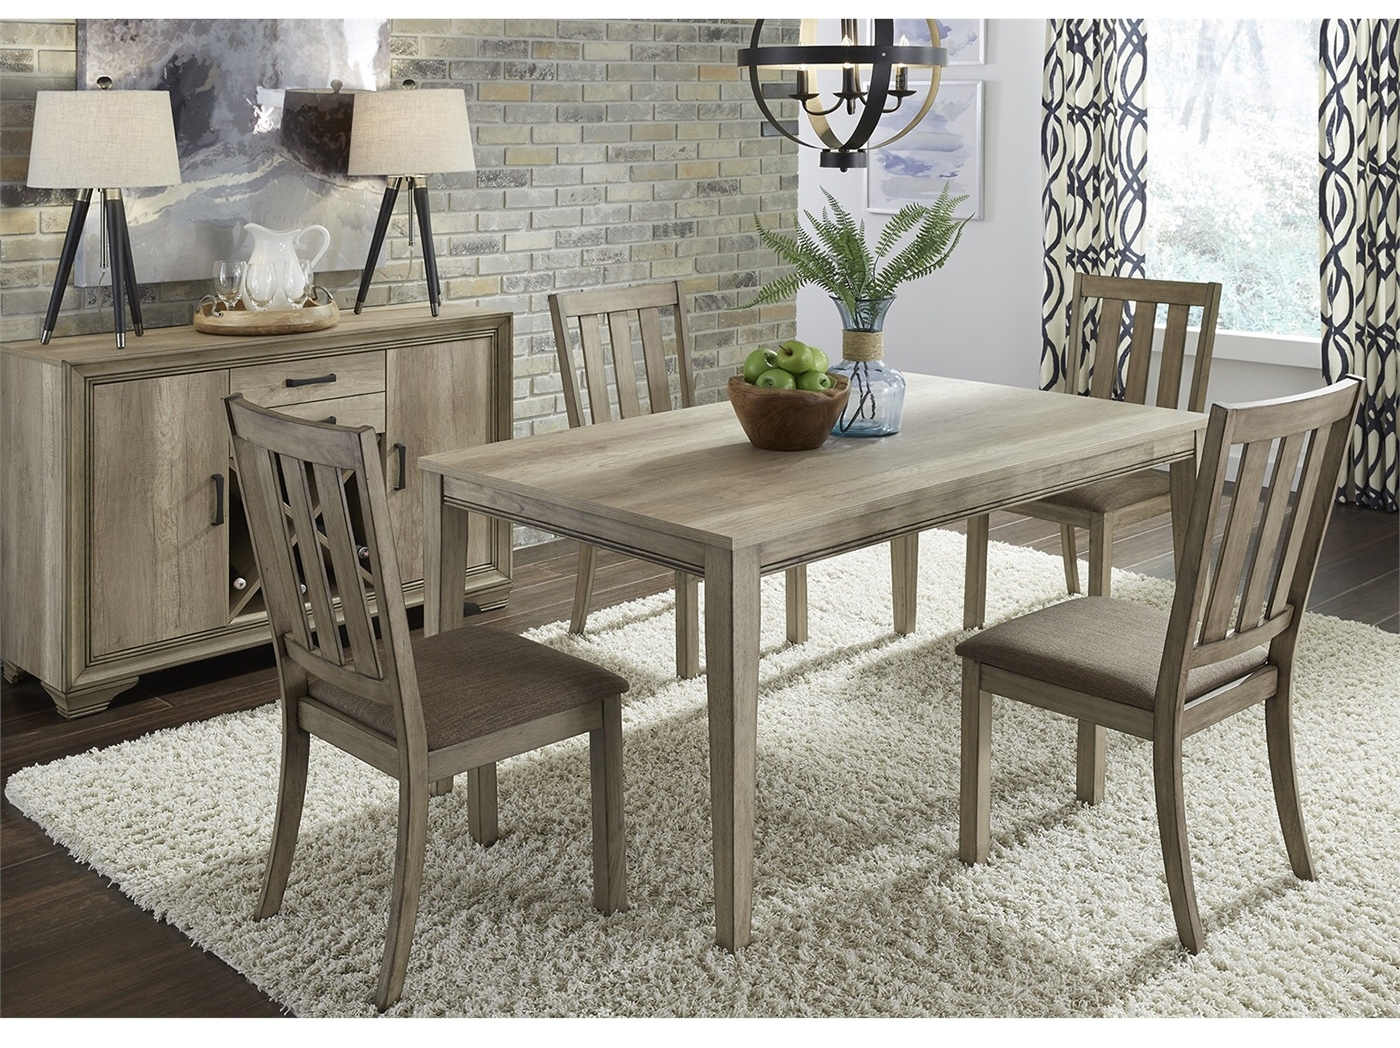 Dining – Dining Sets | Steinhafels Regarding Most Recent Laurent 5 Piece Round Dining Sets With Wood Chairs (Image 7 of 20)